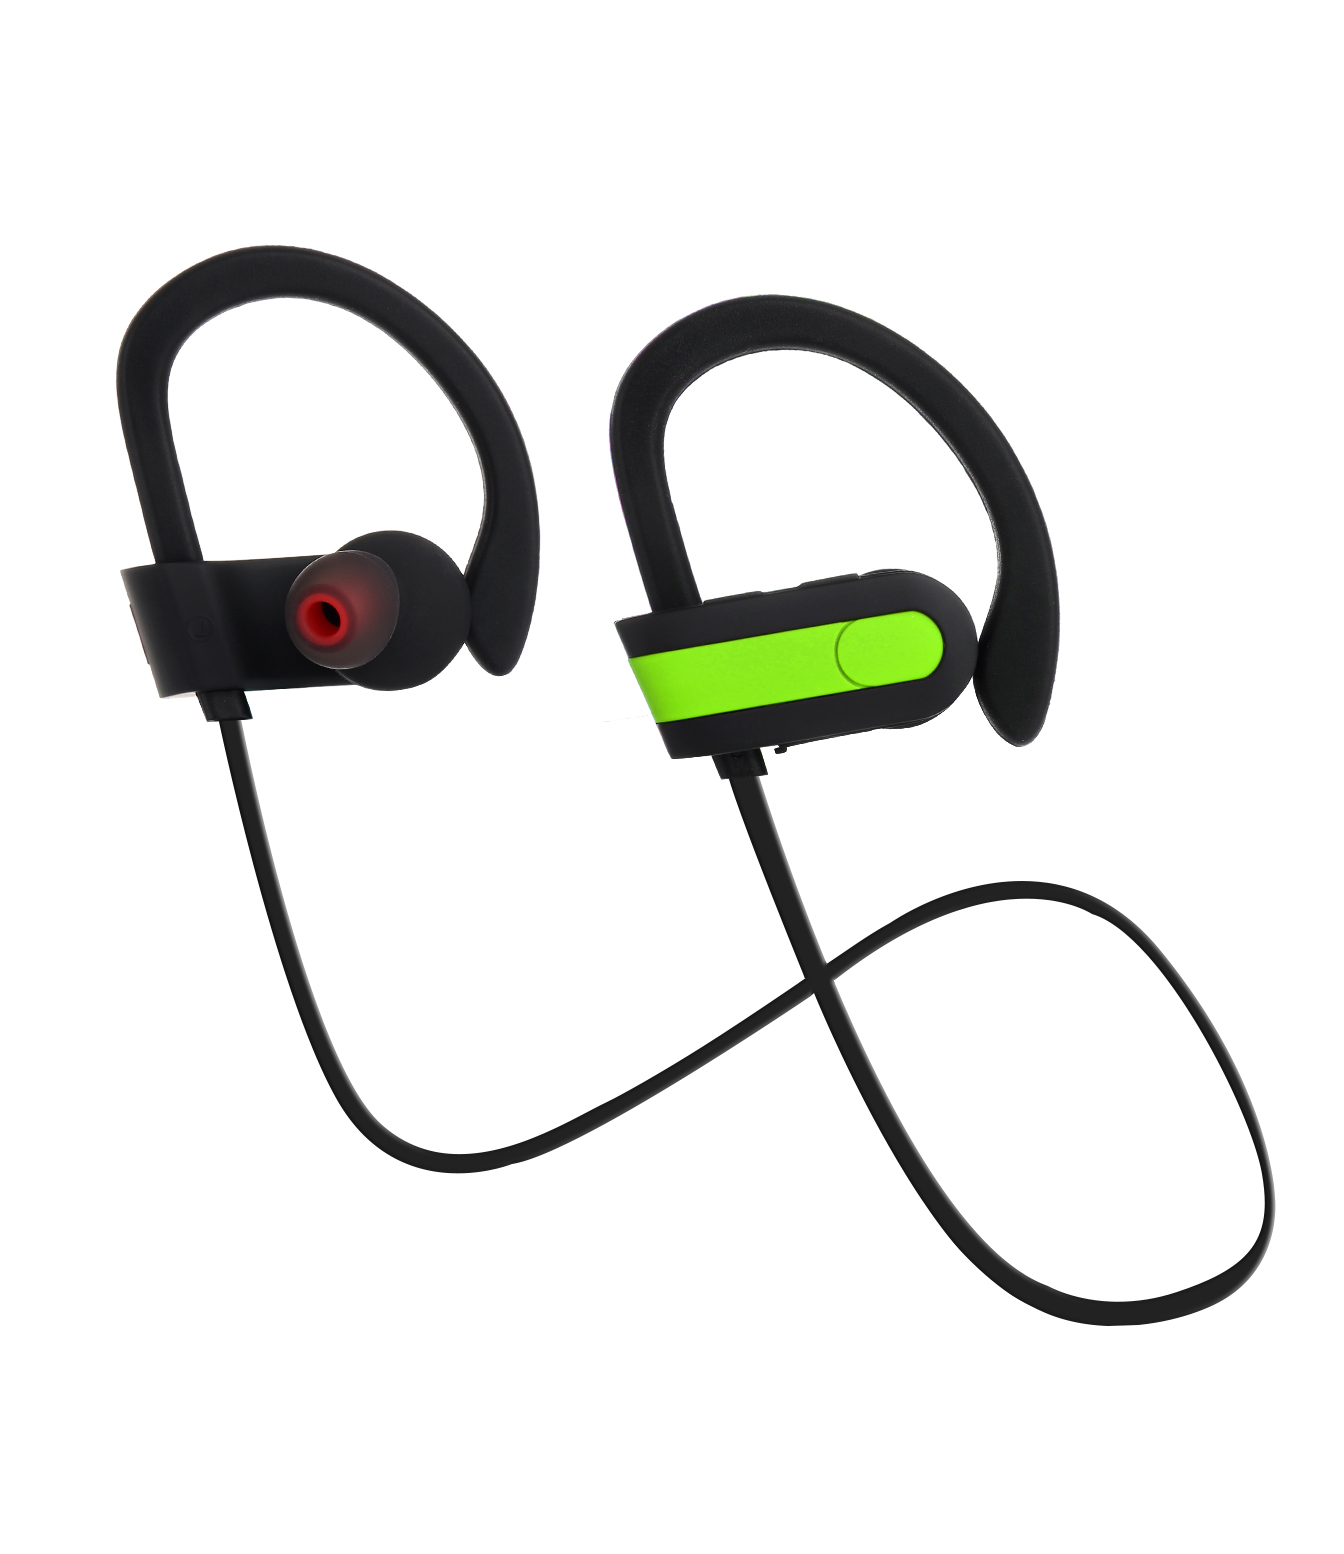 Cool V4.1 Intelligent Bluetooth Headphones Q7S for Mobile Phones with Powerful Heavy Bass